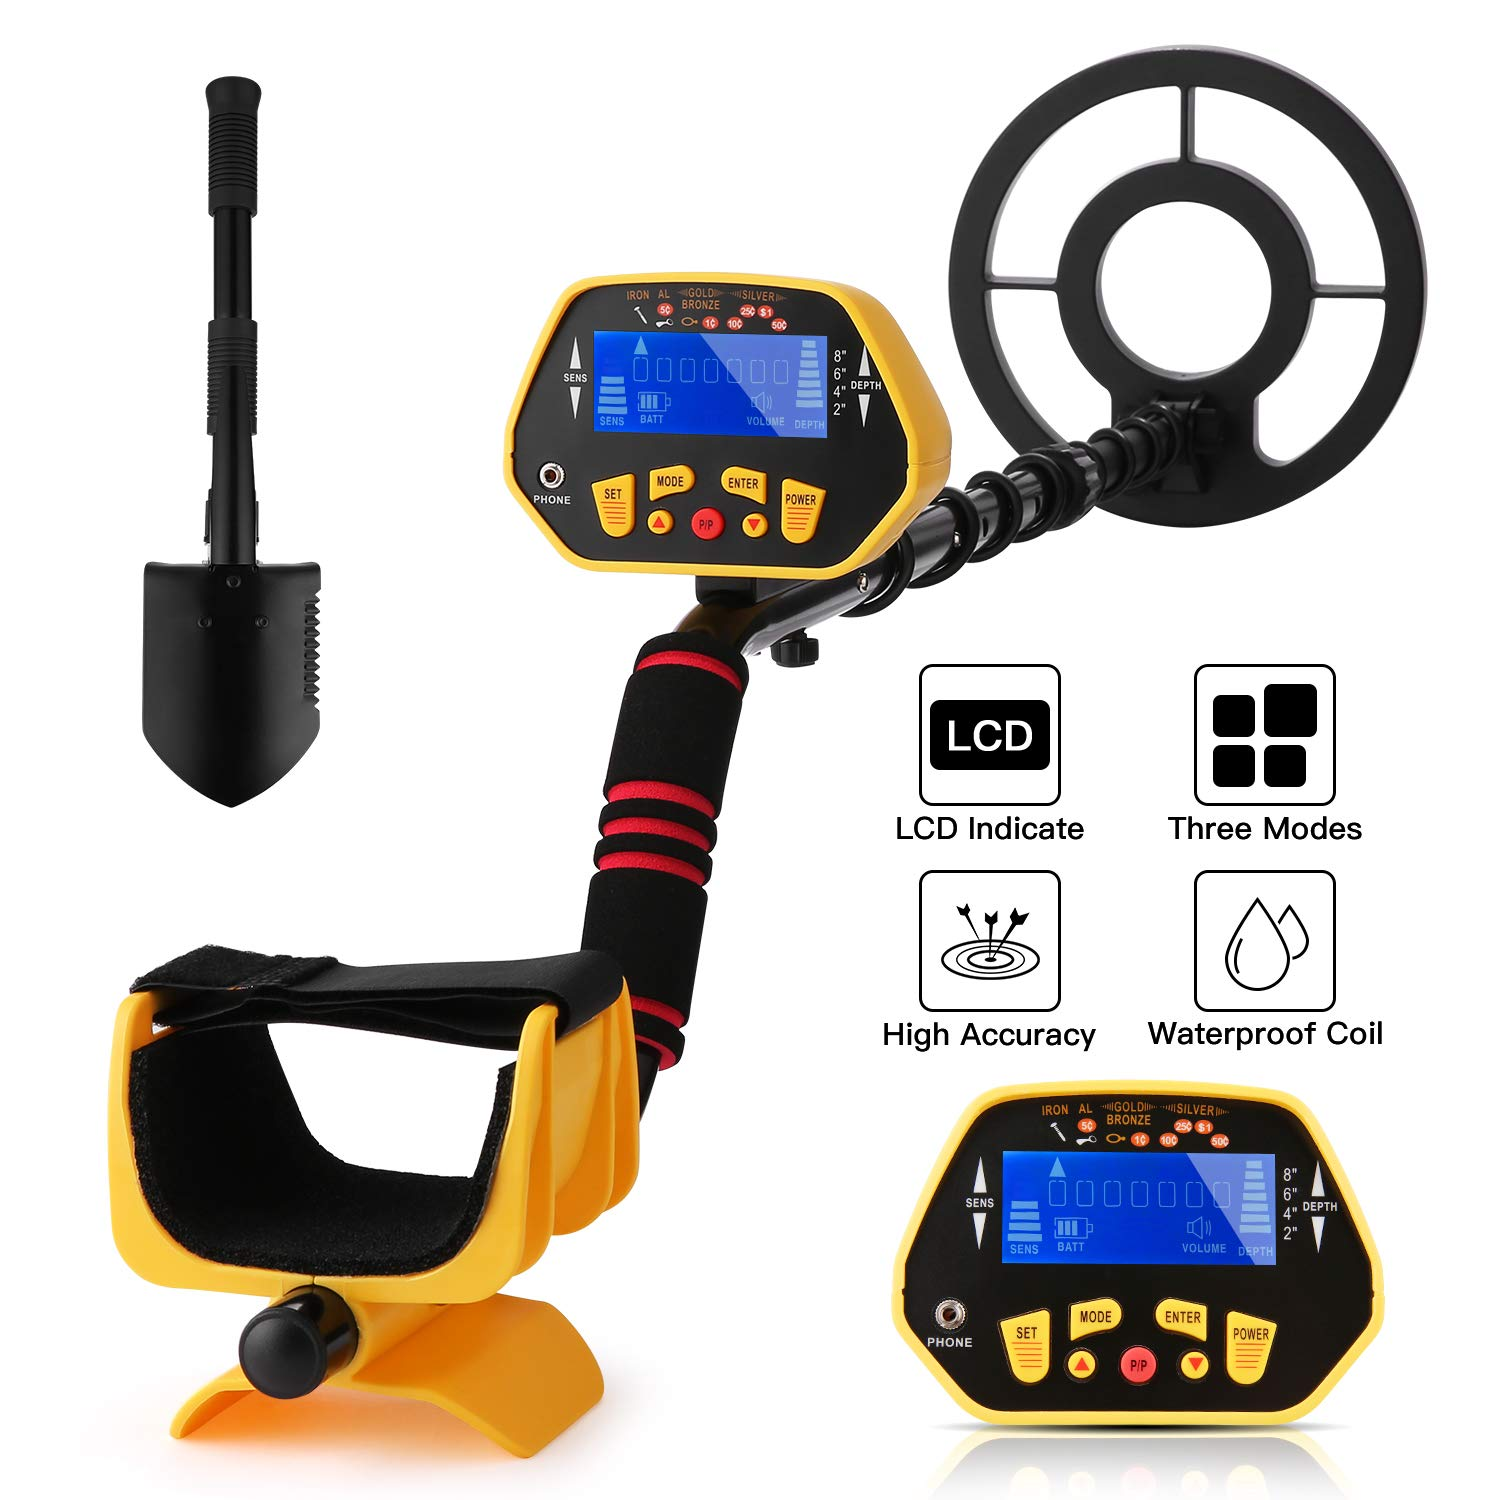 Noeler Metal Detector,High Accuracy Detector with Pinpoint Function,Professional Waterproof Metal Detectors for Adults and Kids Size 1